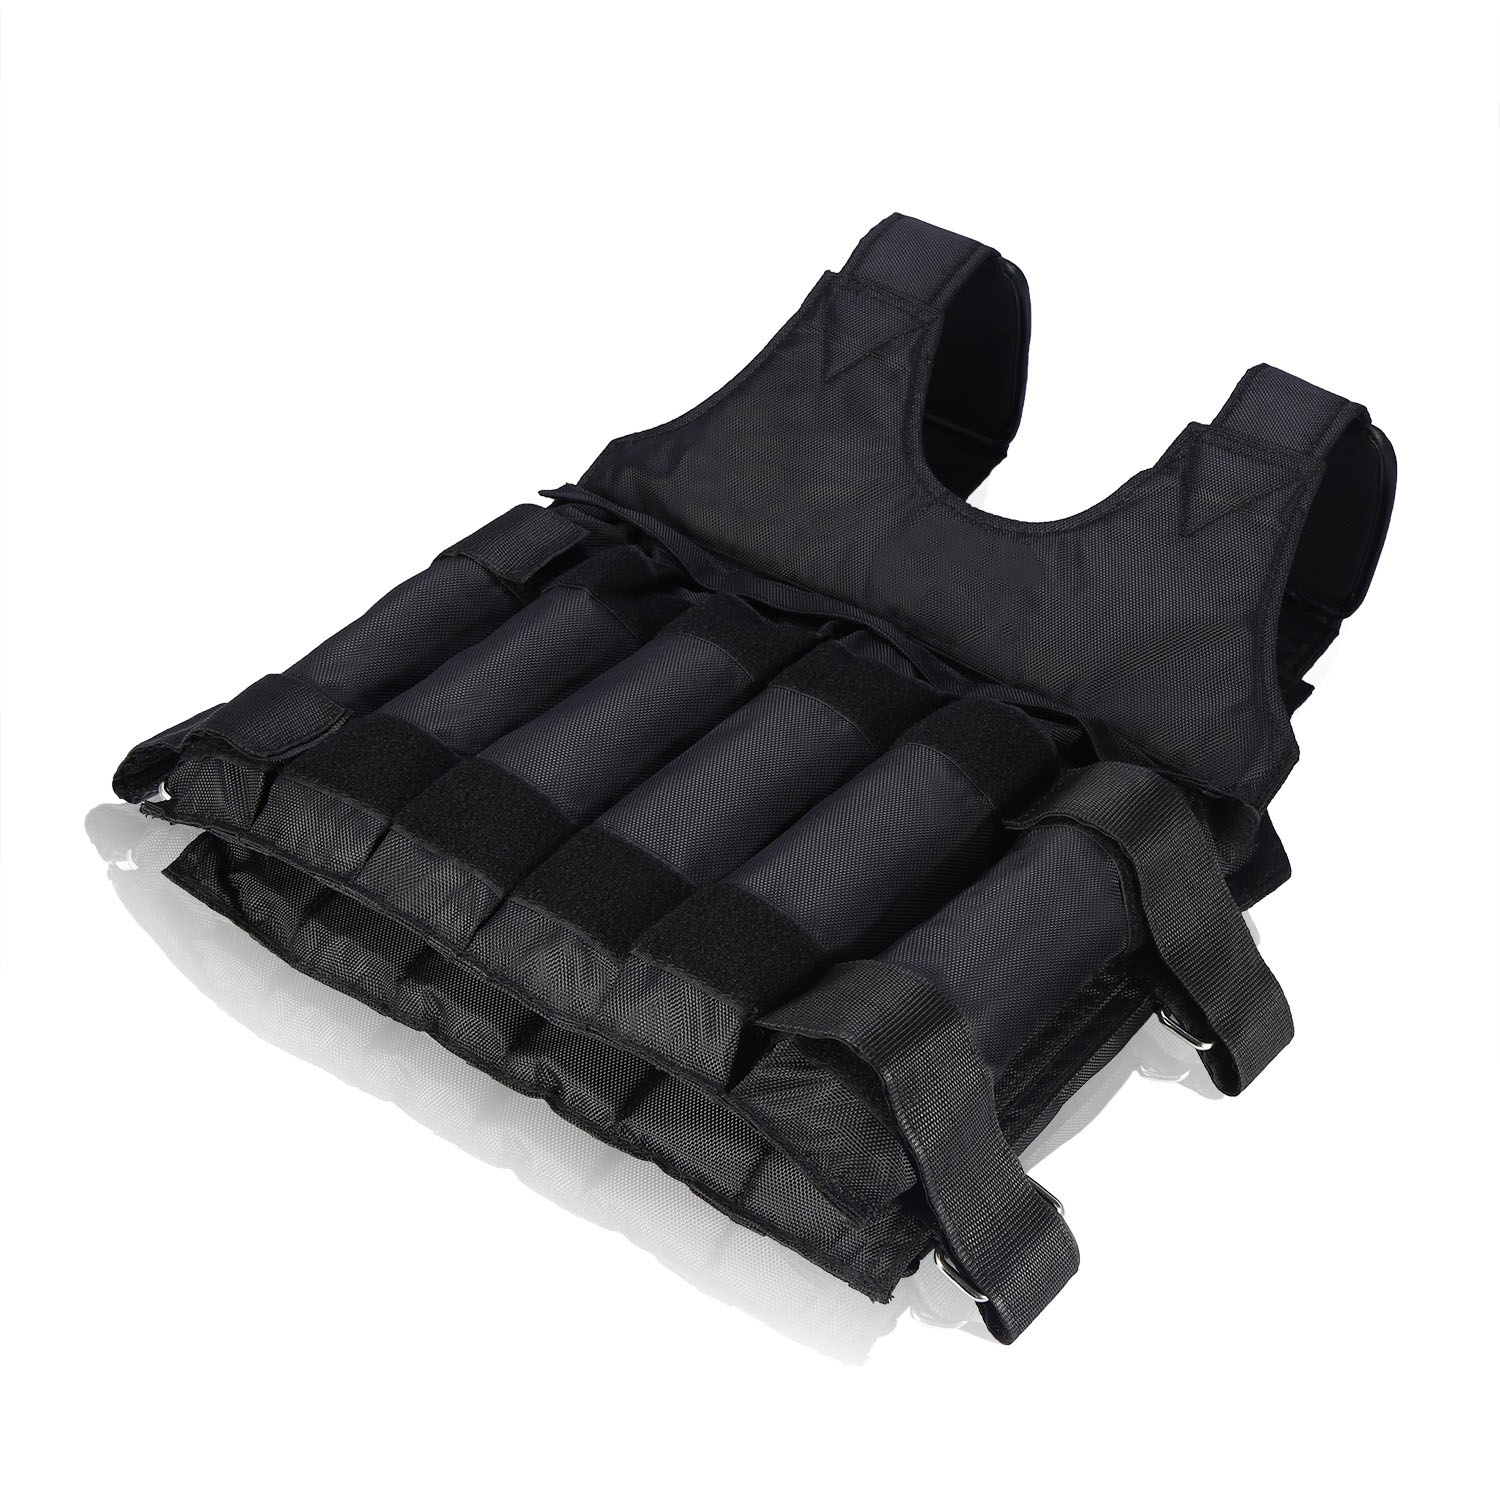 Weighted-Vest-44-110lbs-Weight-Workout-Exercise-Body-Training-Crossfit-Equipment thumbnail 24